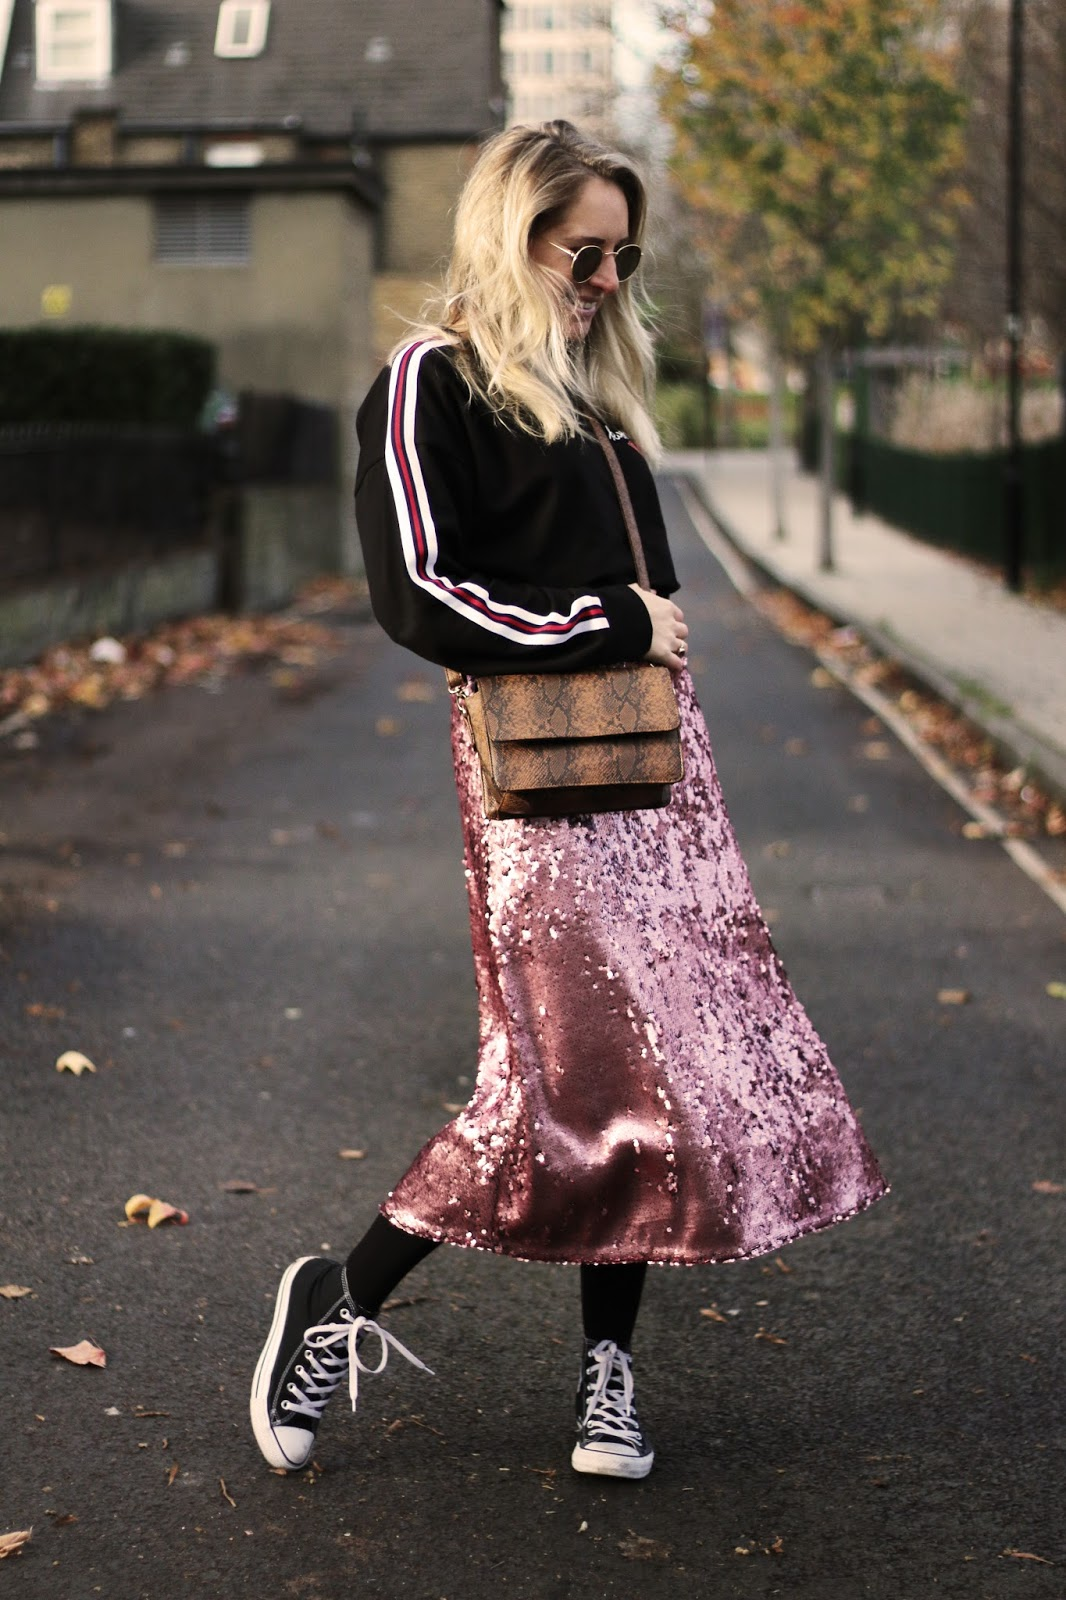 5df10c24317 Jumper c o - Shein   Skirt - H M   Bag - La Redoute   Trainers - Converse    Sunglasses - Ebay. Sequin skirt